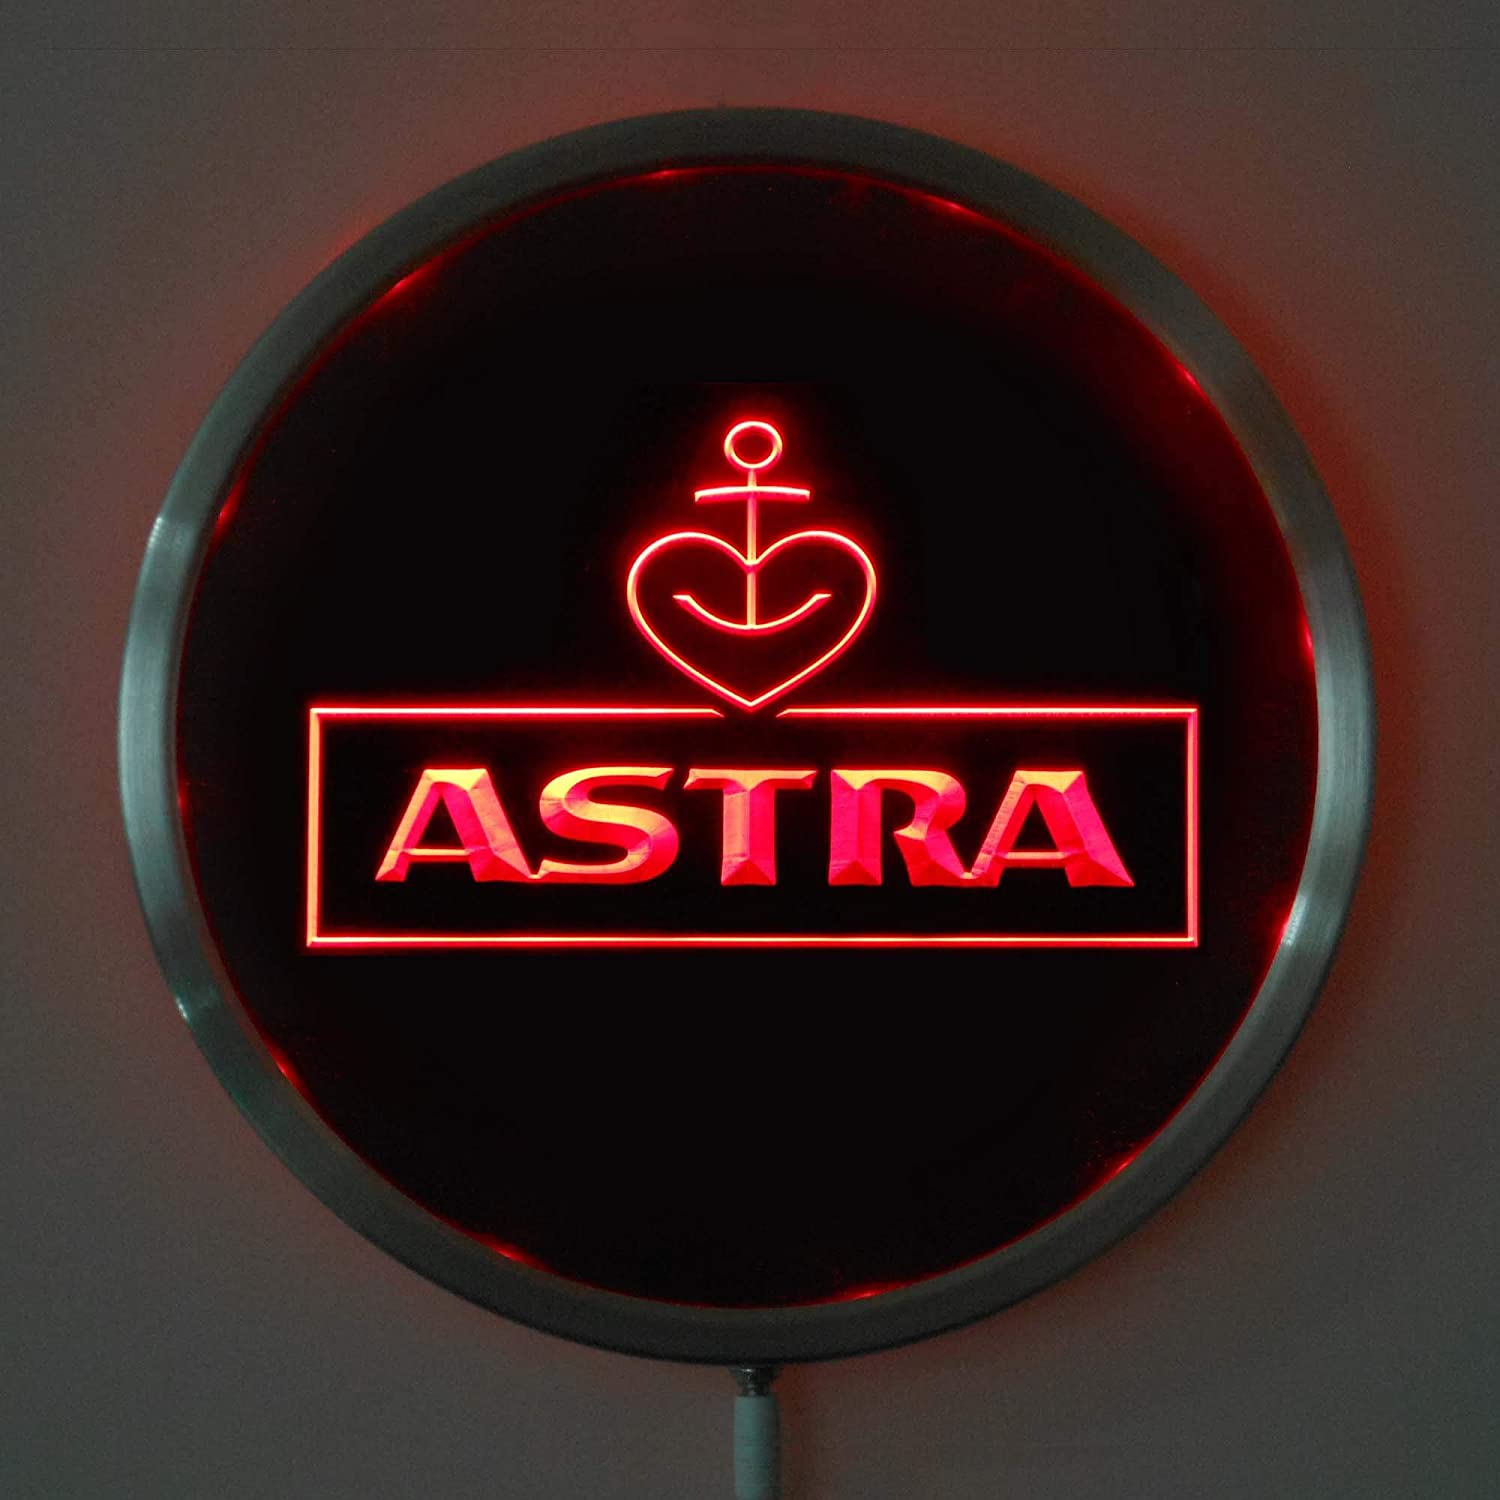 ZFRANC Astra Houston Mall Beer 10 Inches Round LED Sign Neon Cave Light R Man Max 60% OFF